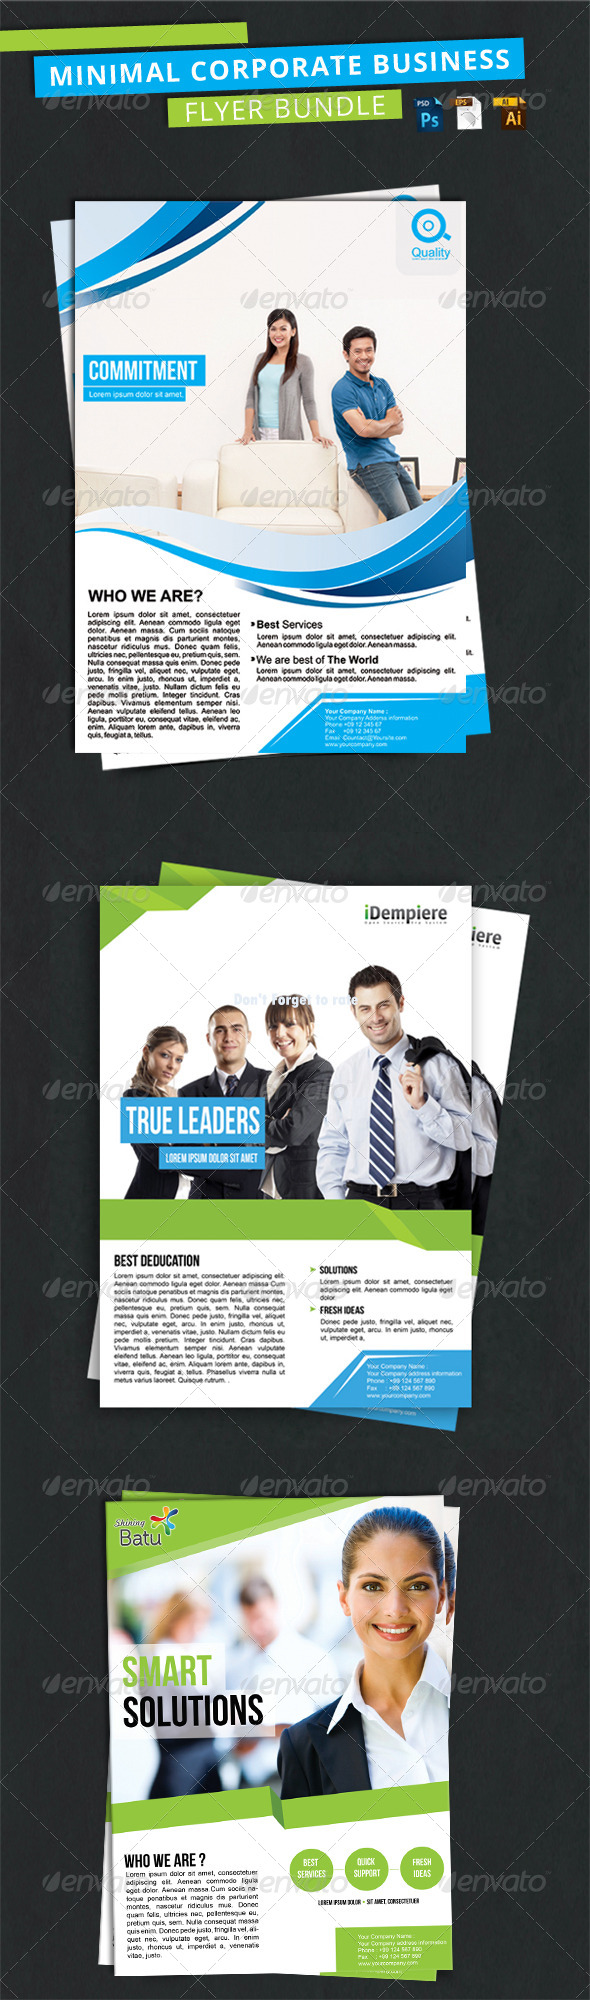 GraphicRiver Minimal Corporate Business Flyer Bundle 7731857